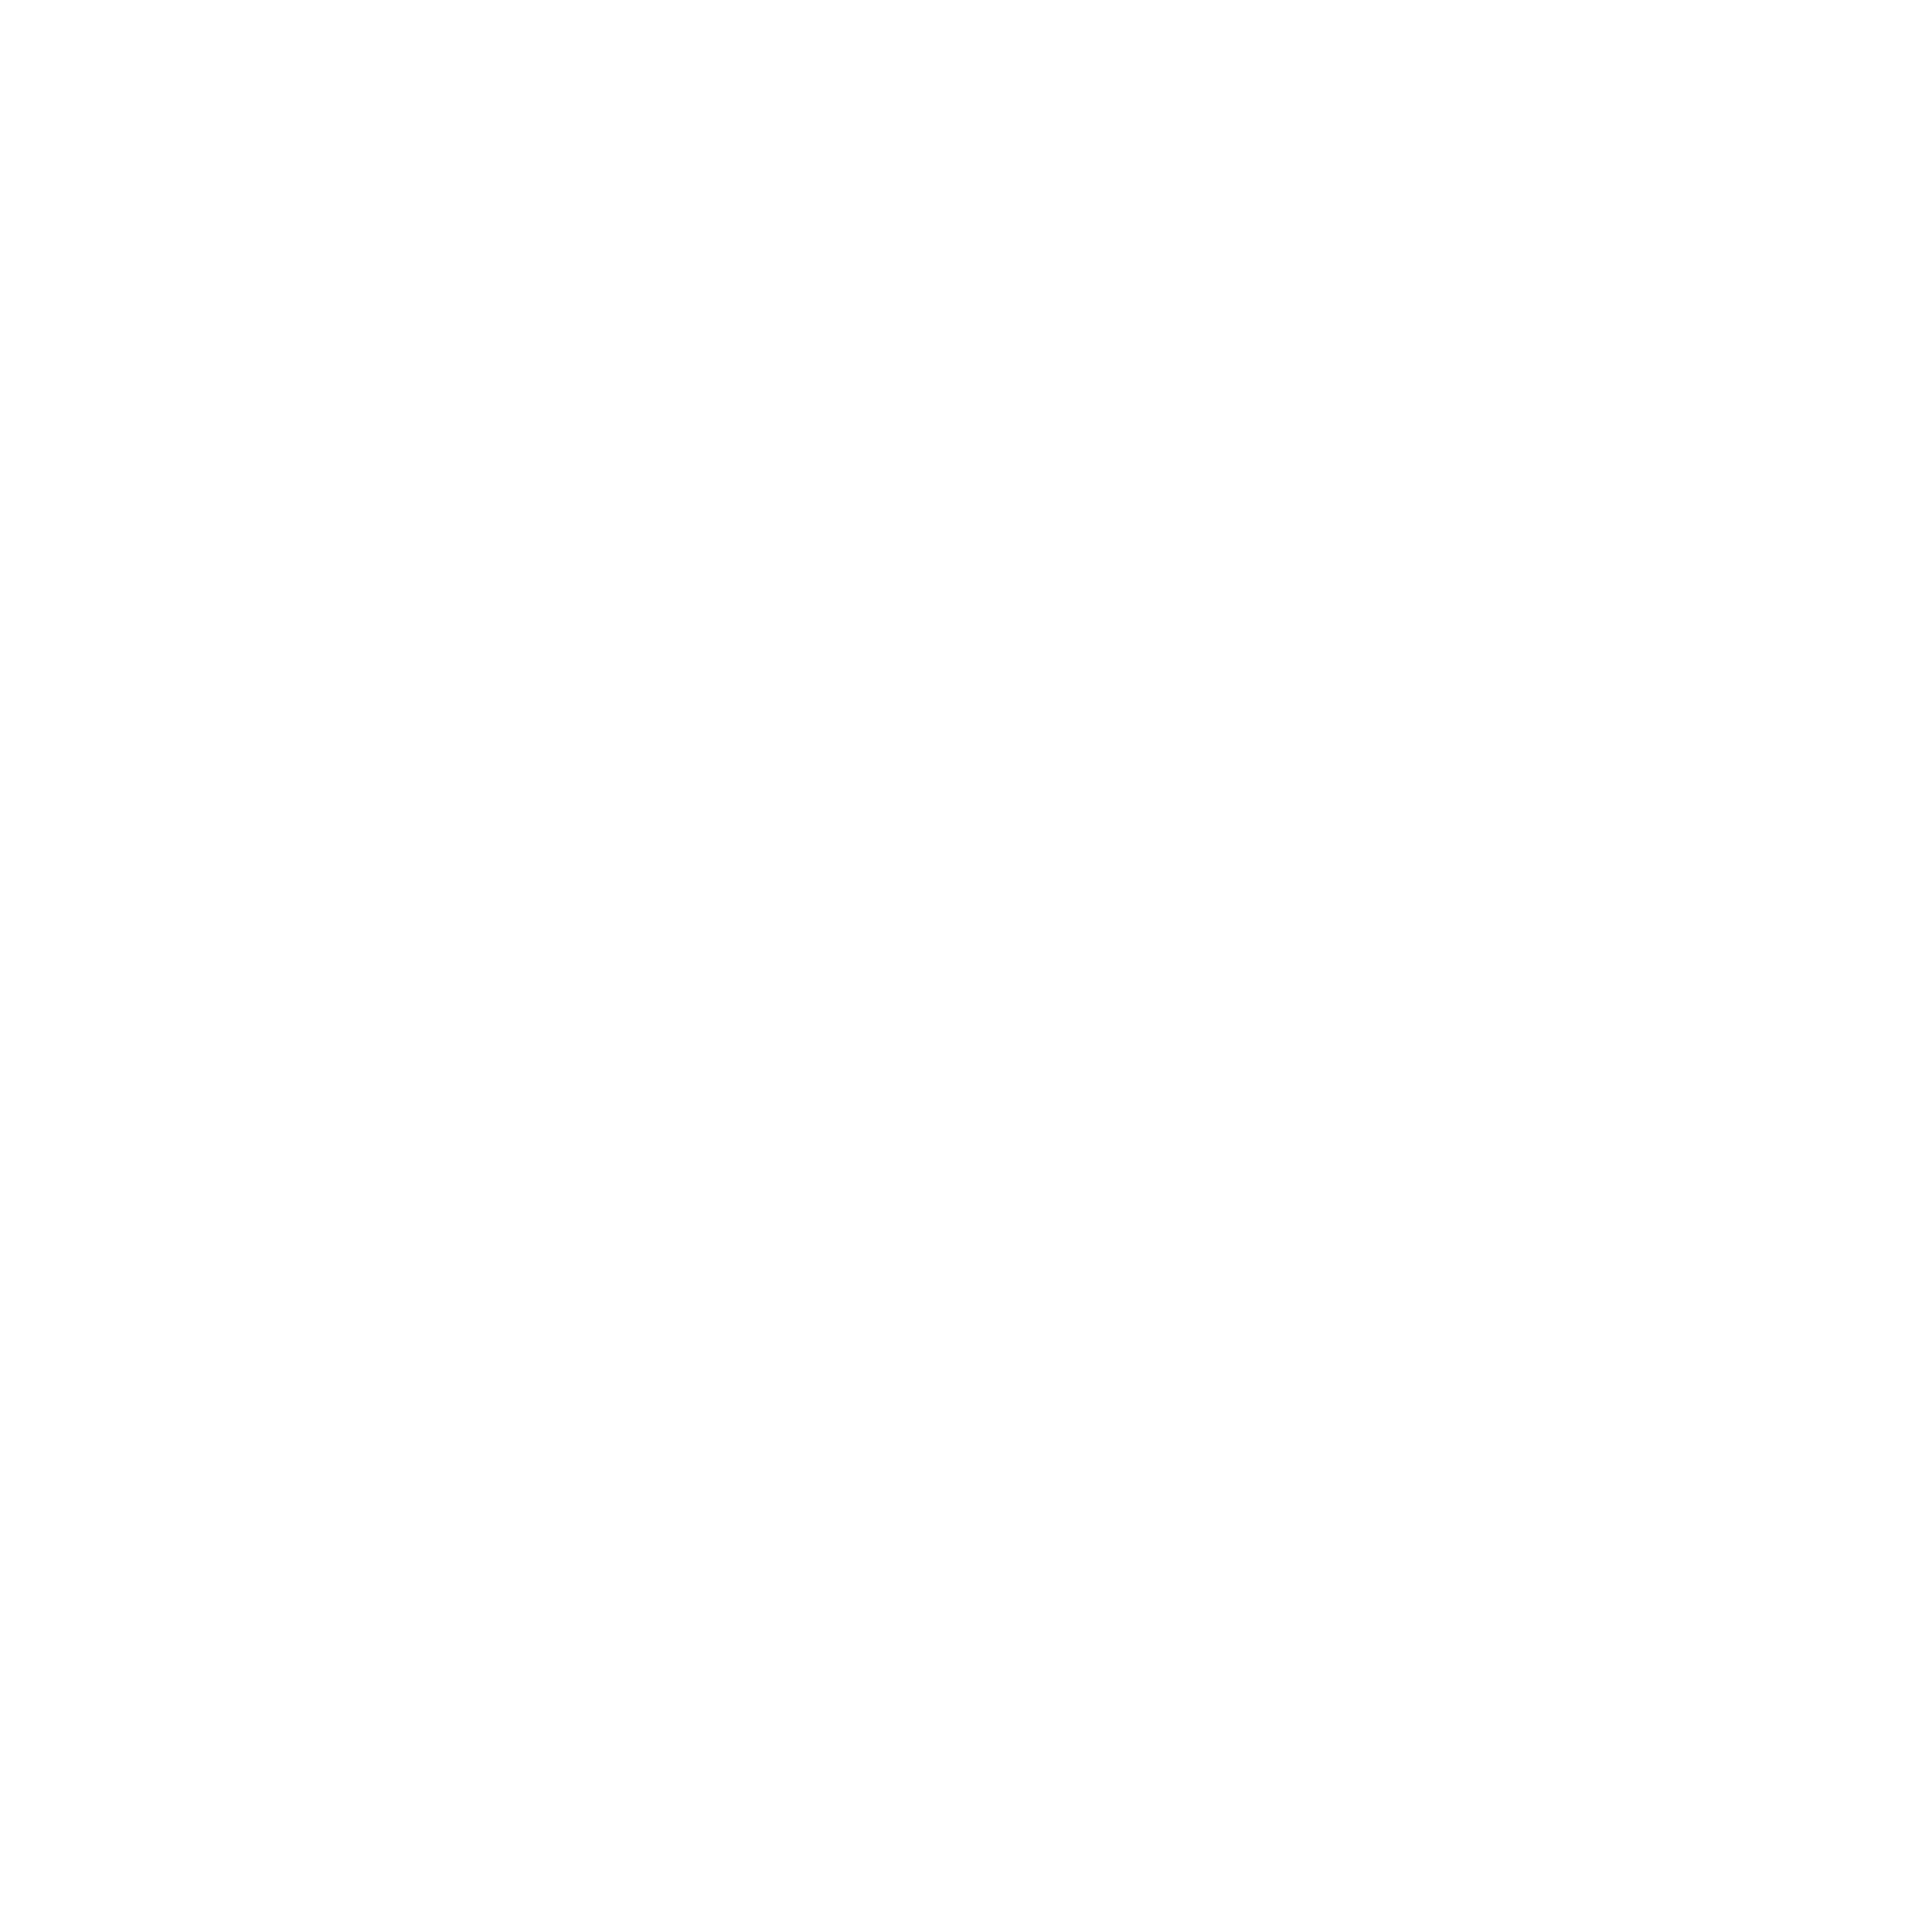 Rob Ellinger Magic